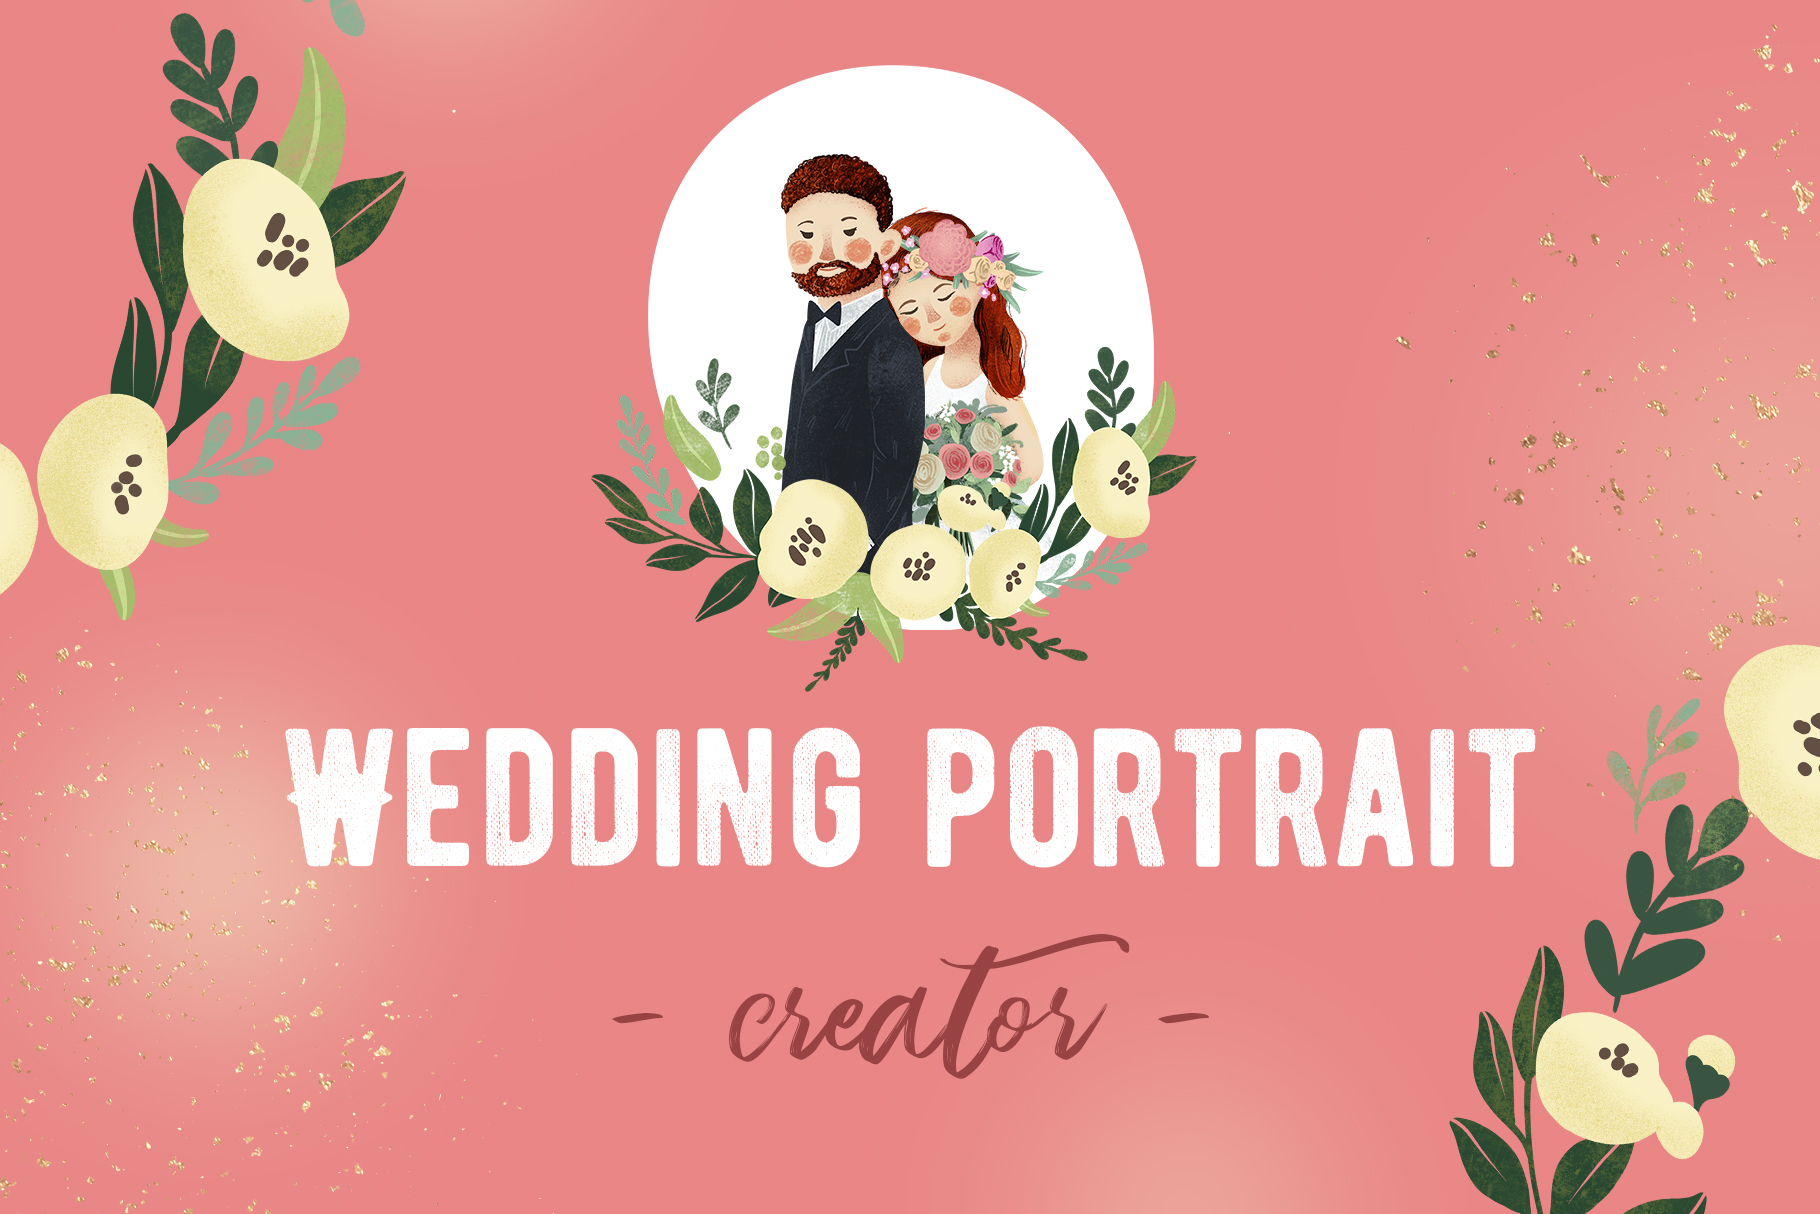 Personal Wedding Portrait Creator example image 1